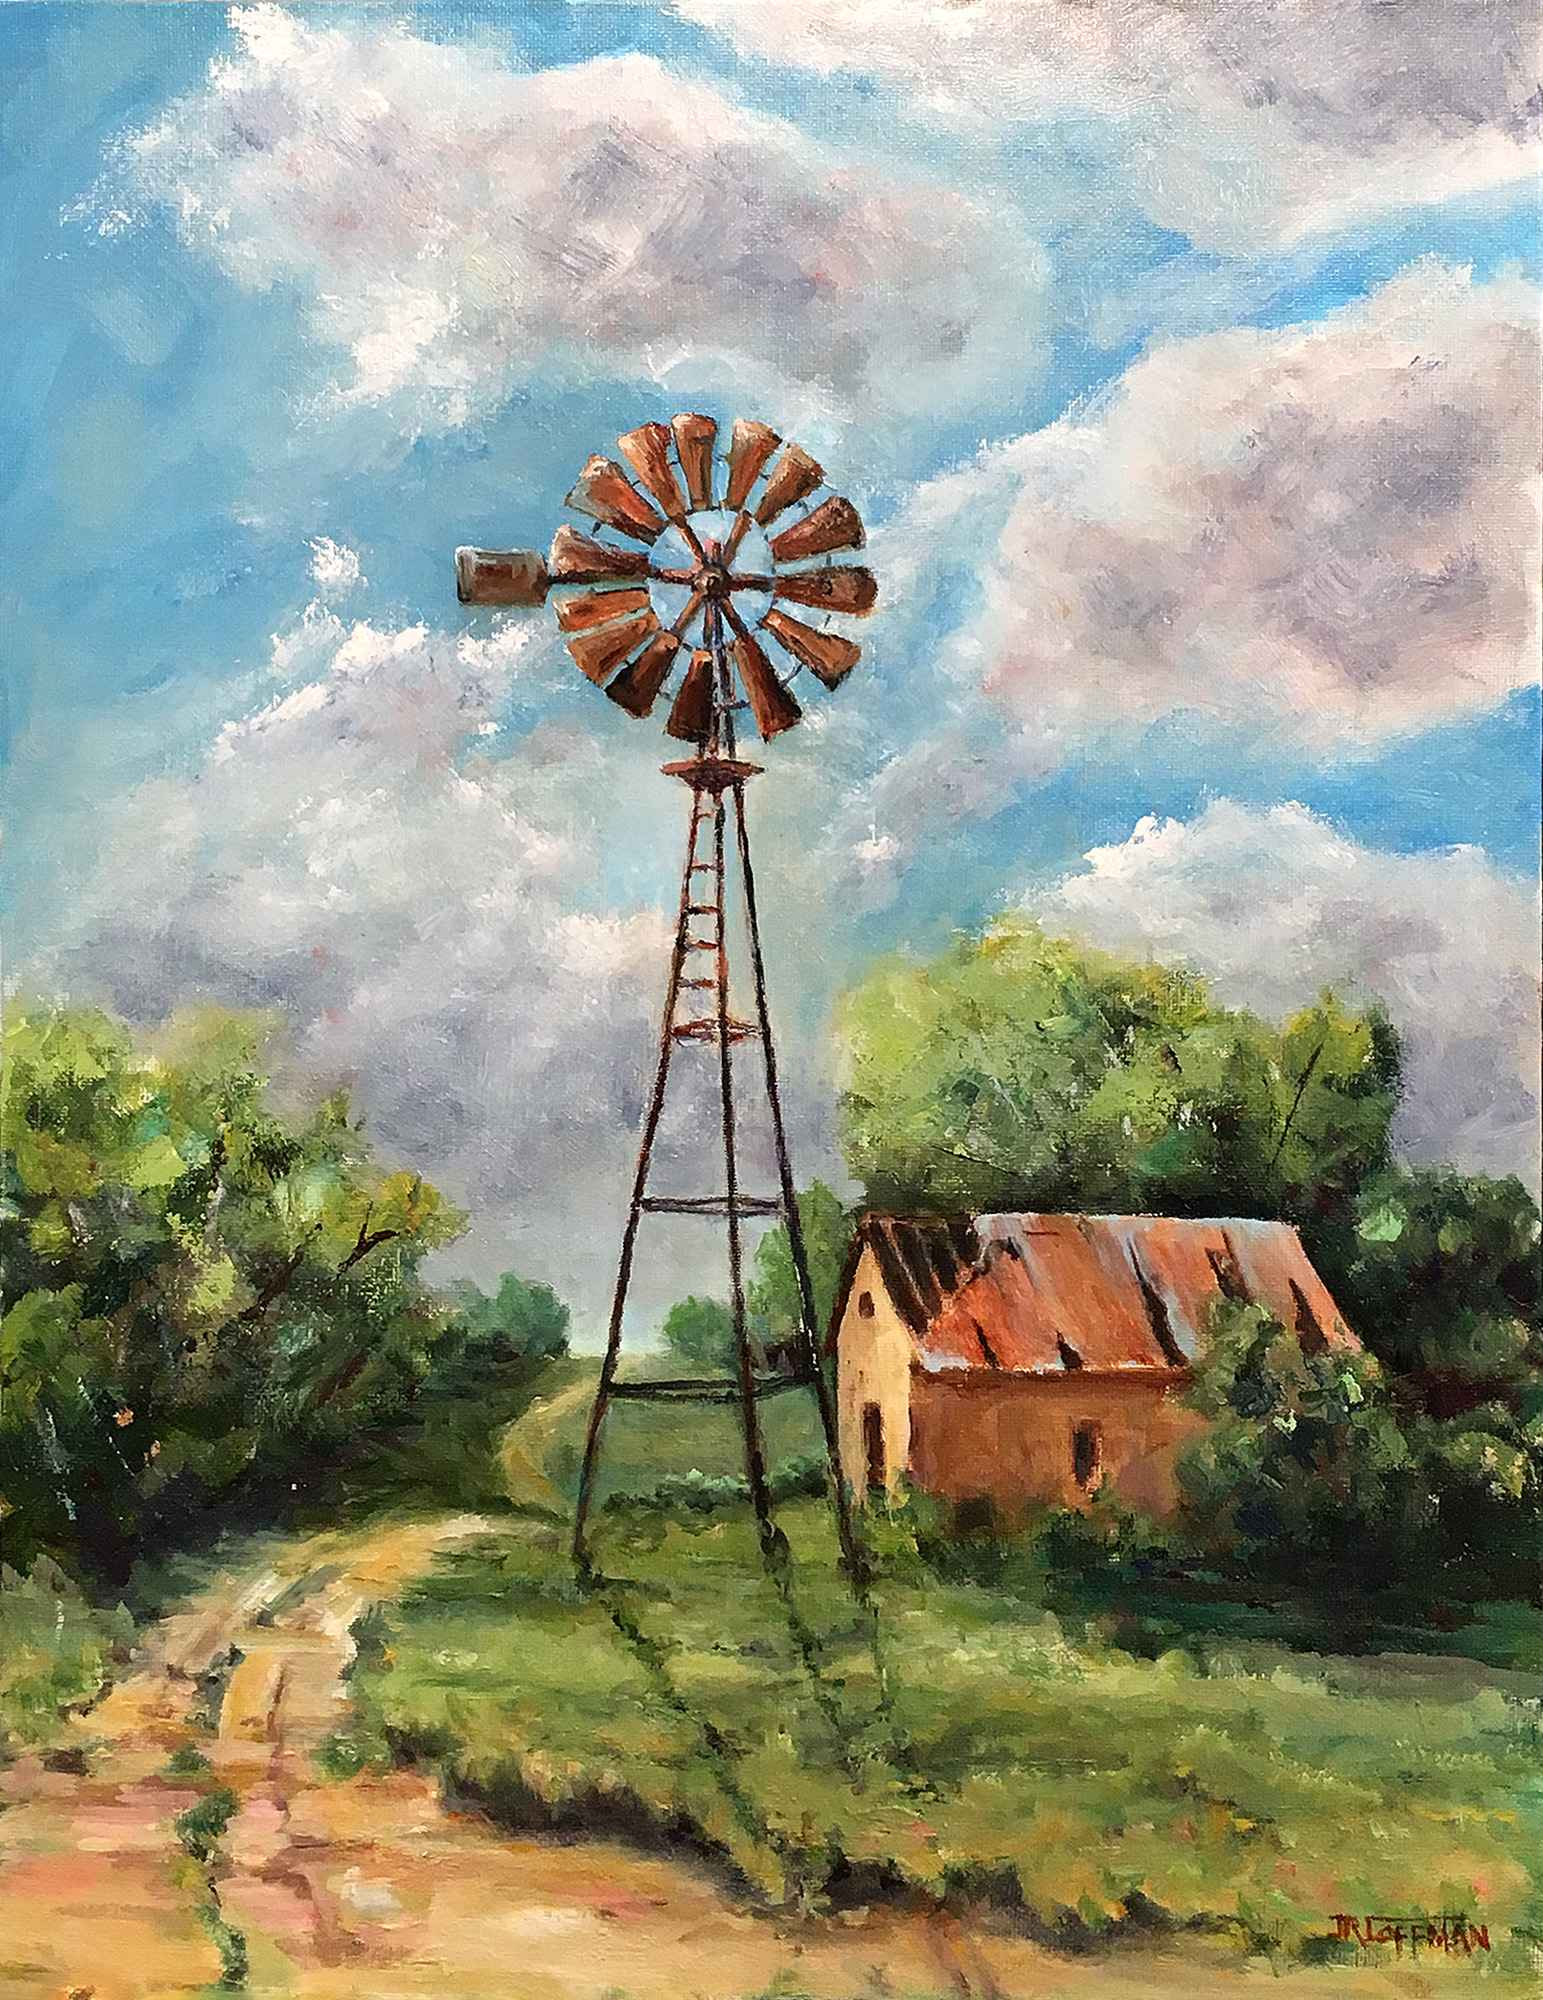 Beauty of Old Things by  Jim Coffman - Masterpiece Online